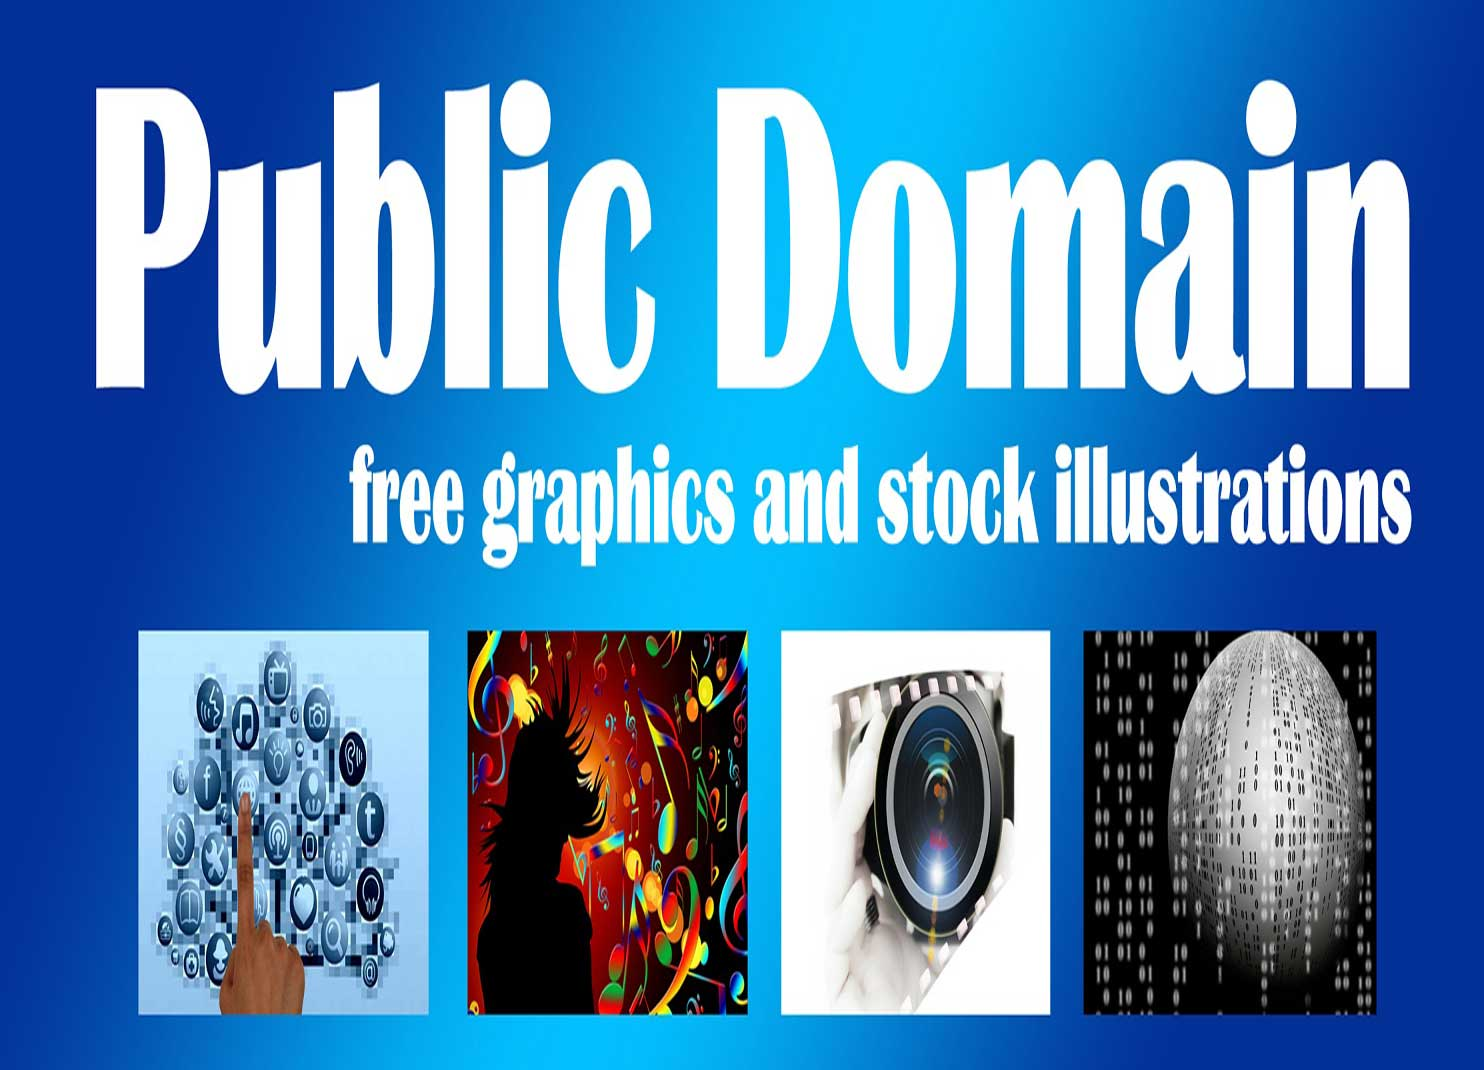 teach how to find thousands of high quality books,  images,  photos and videos for free and sell them